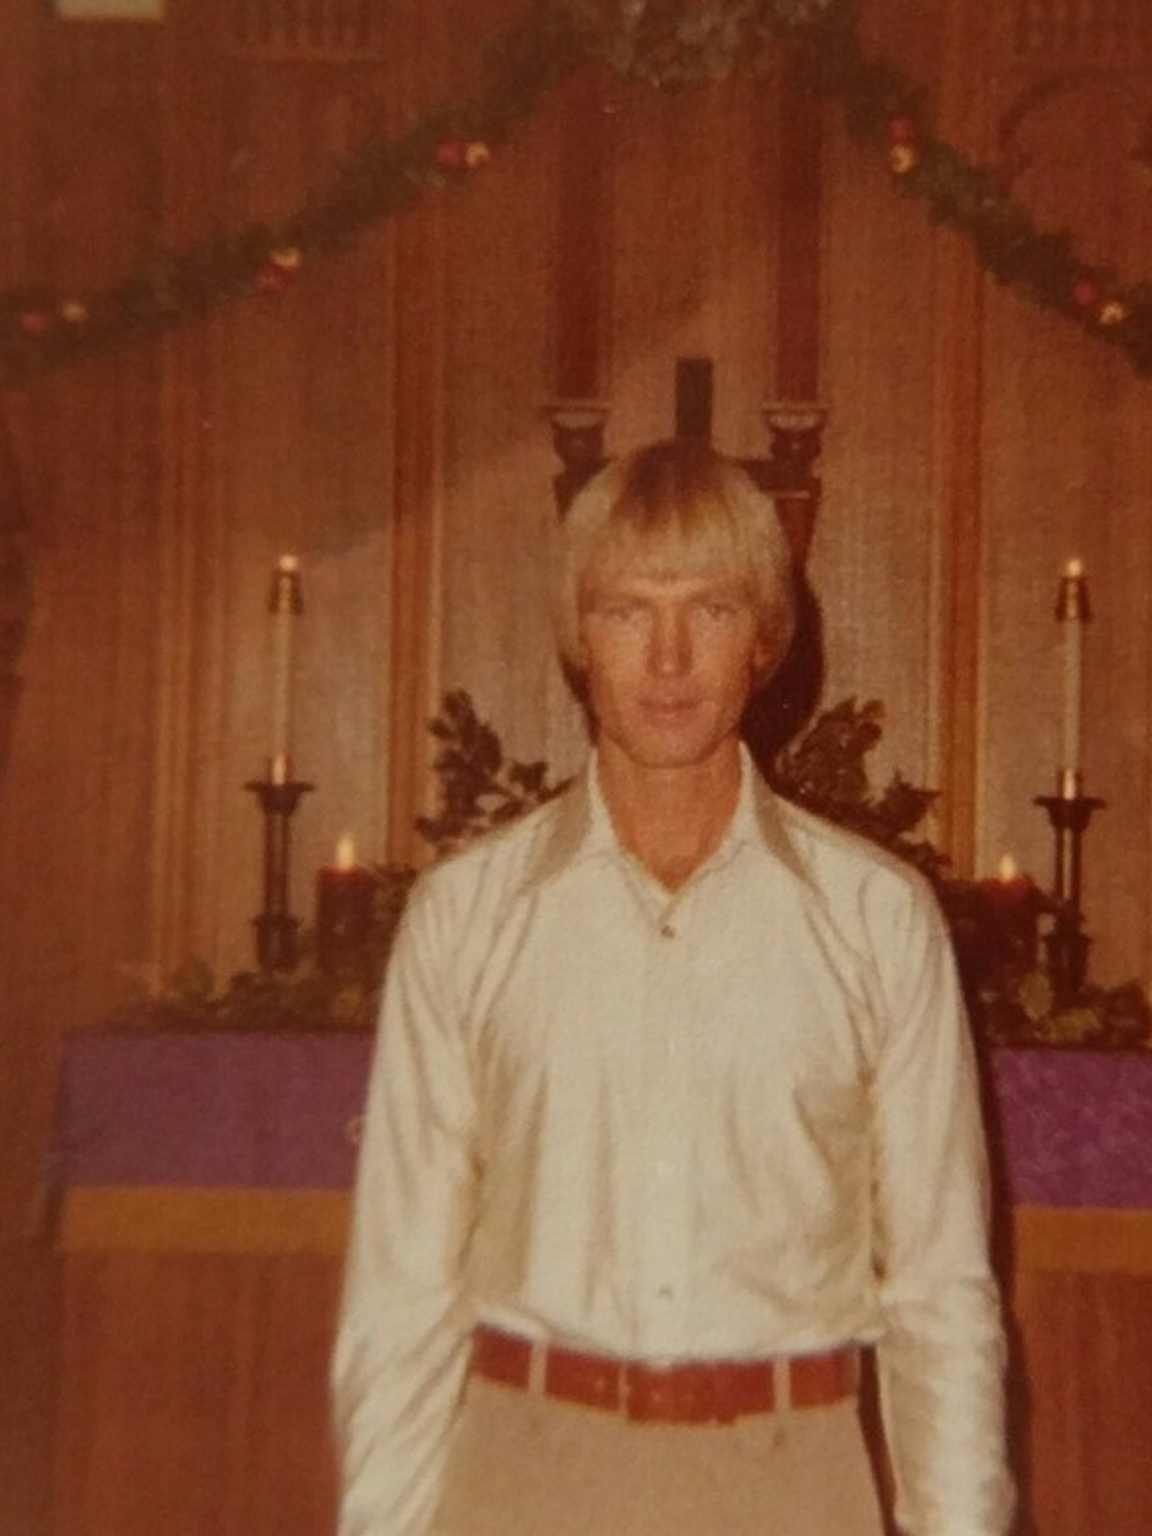 A Dec. 24, 1977, photograph of Felix Vail when he married